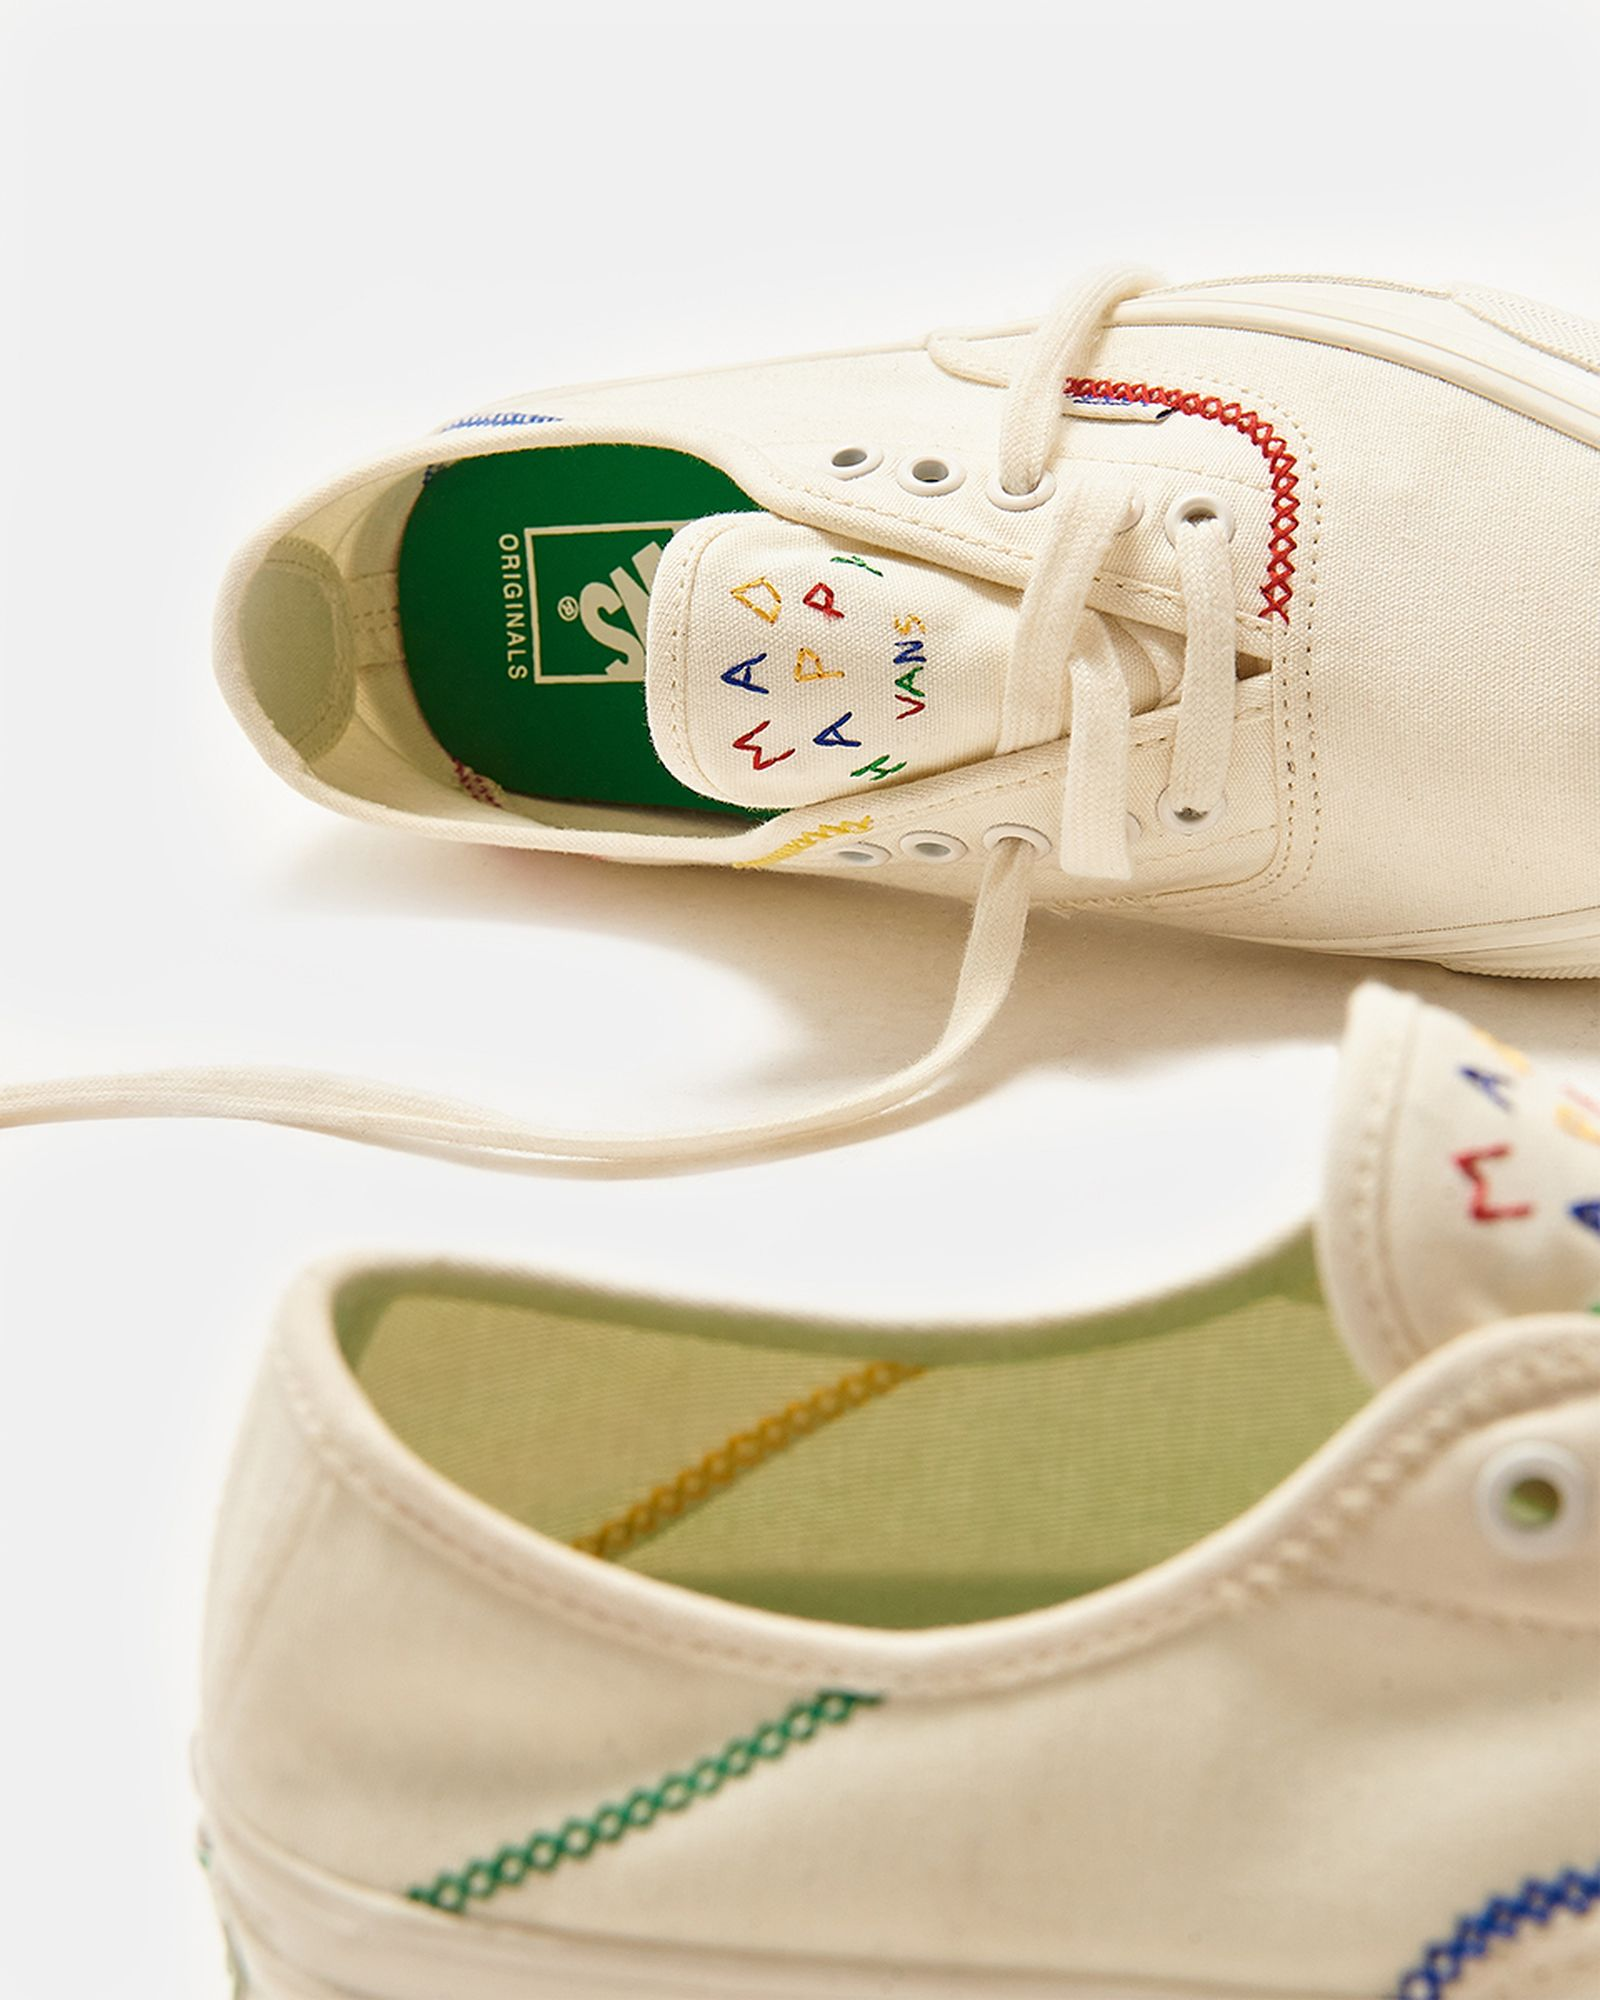 madhappy-vault-by-vans-og-style-43-lx-release-date-price-09